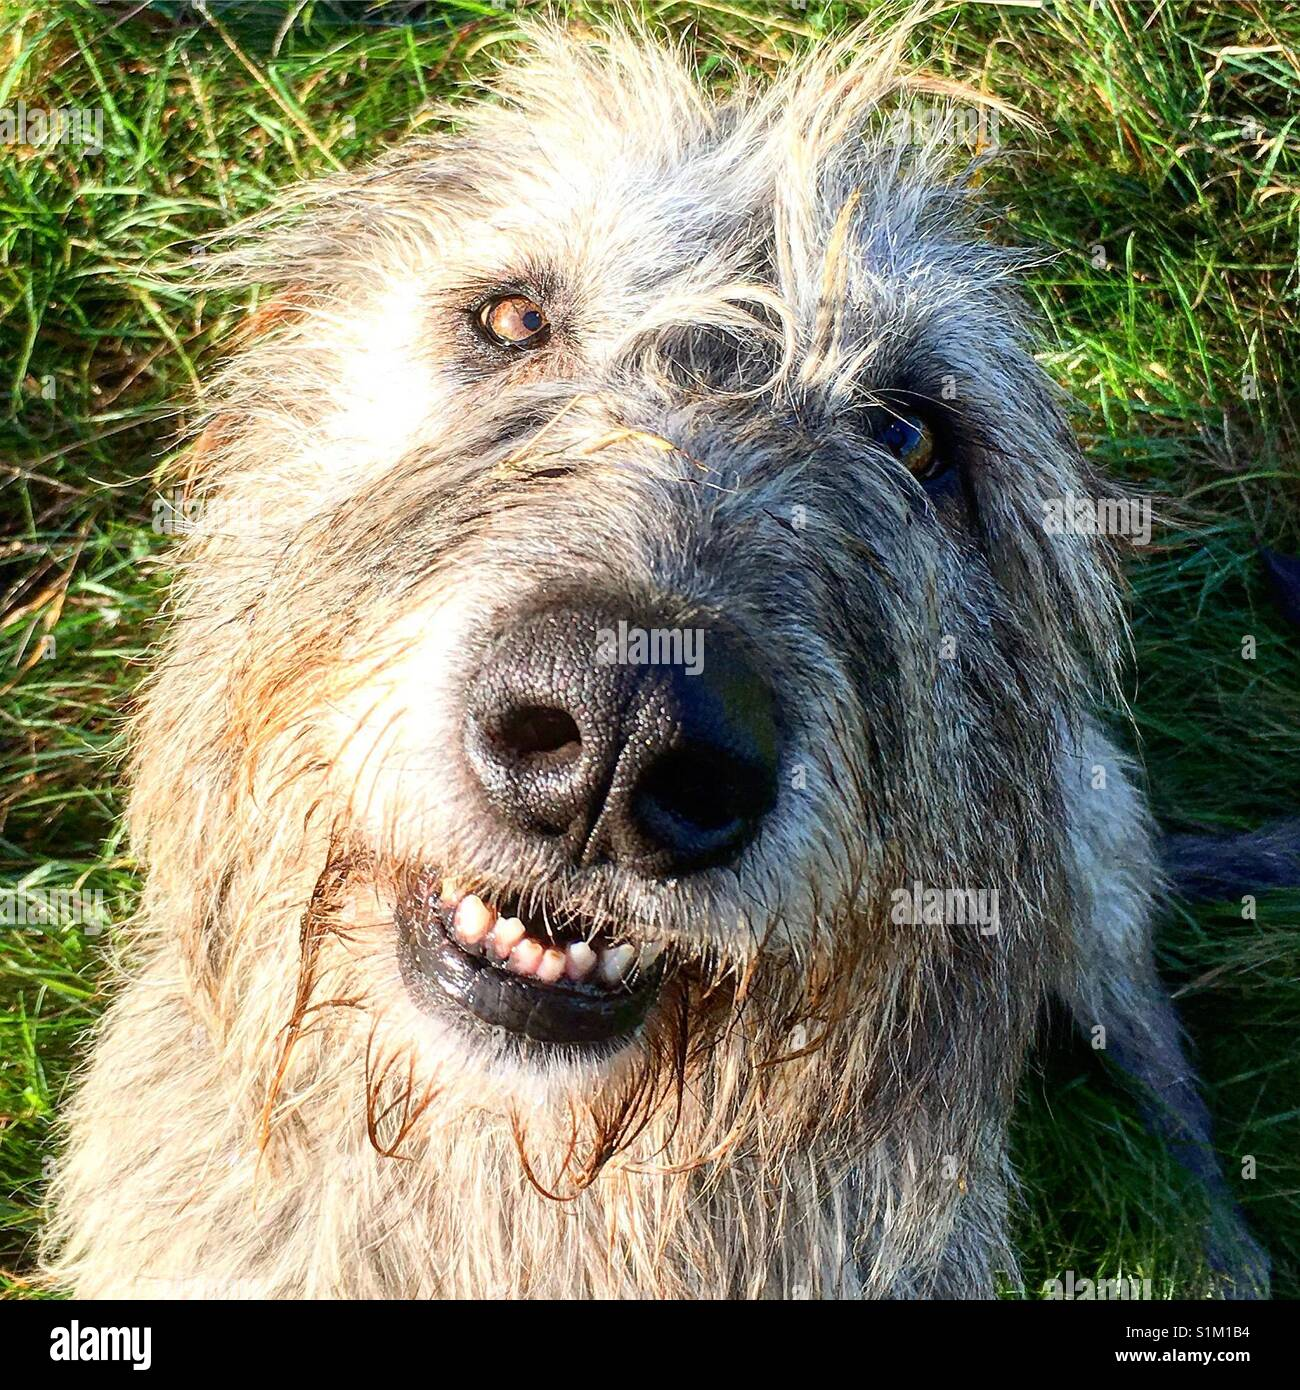 Irish wolfhound looking at camera with a big toothy grin - Stock Image